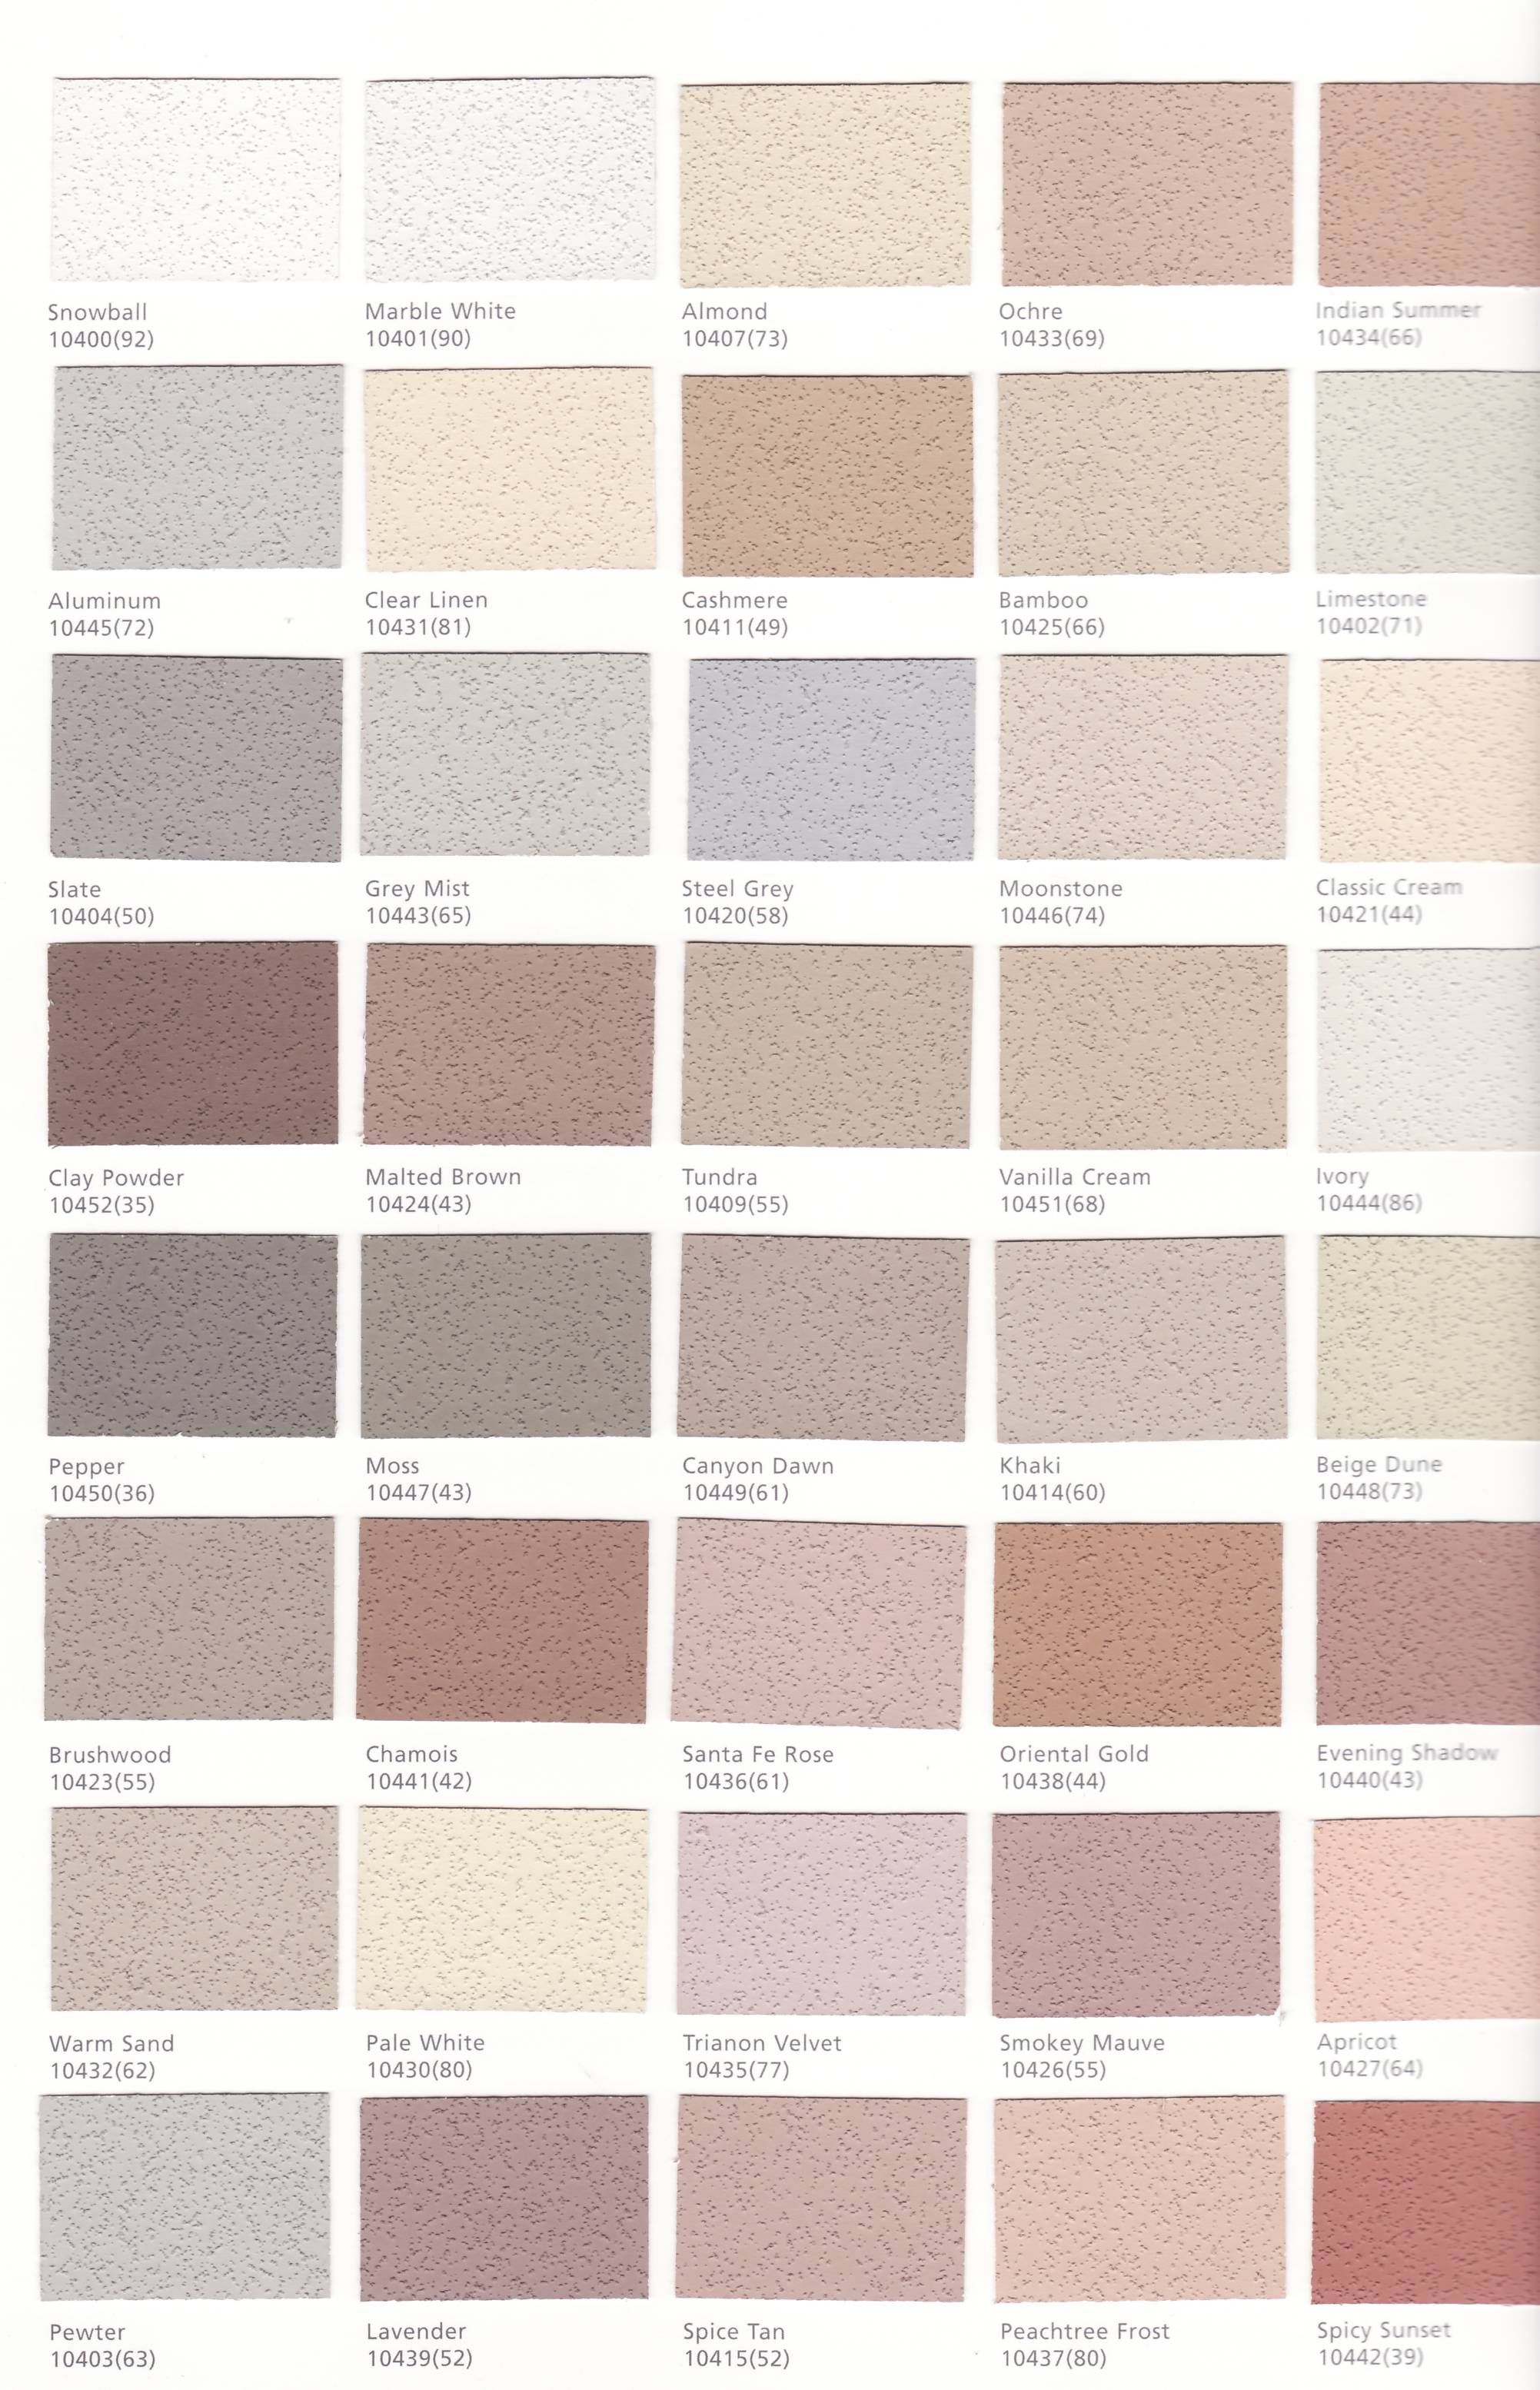 How To Stucco Basement Walls Diy Interior And Exterior Walls Stucco Colors Exterior House Paint Color Combinations House Paint Exterior